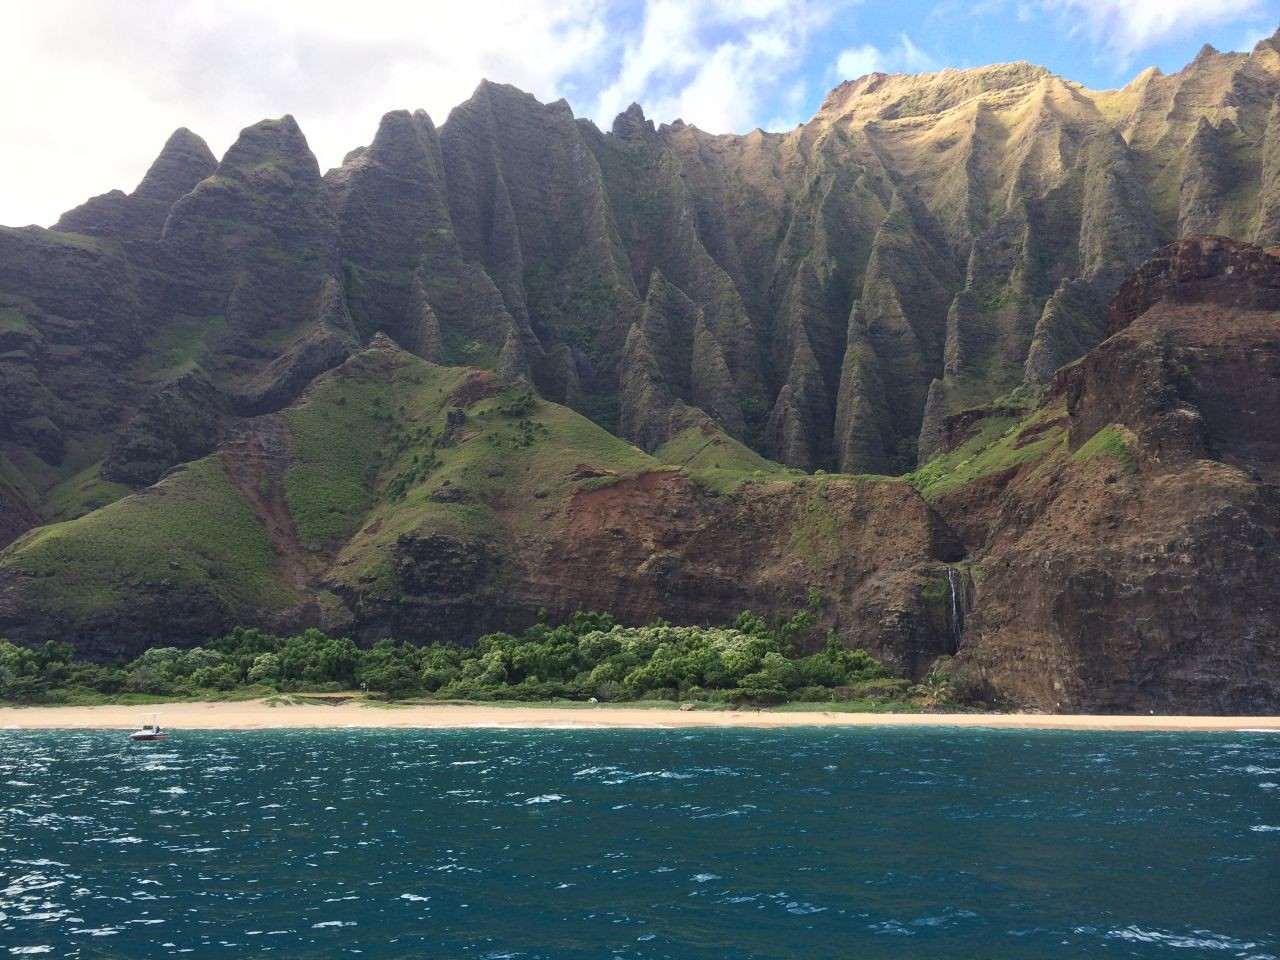 Visiting Kauai with Celiac Disease and a Life-Threatening Peanut Allergy